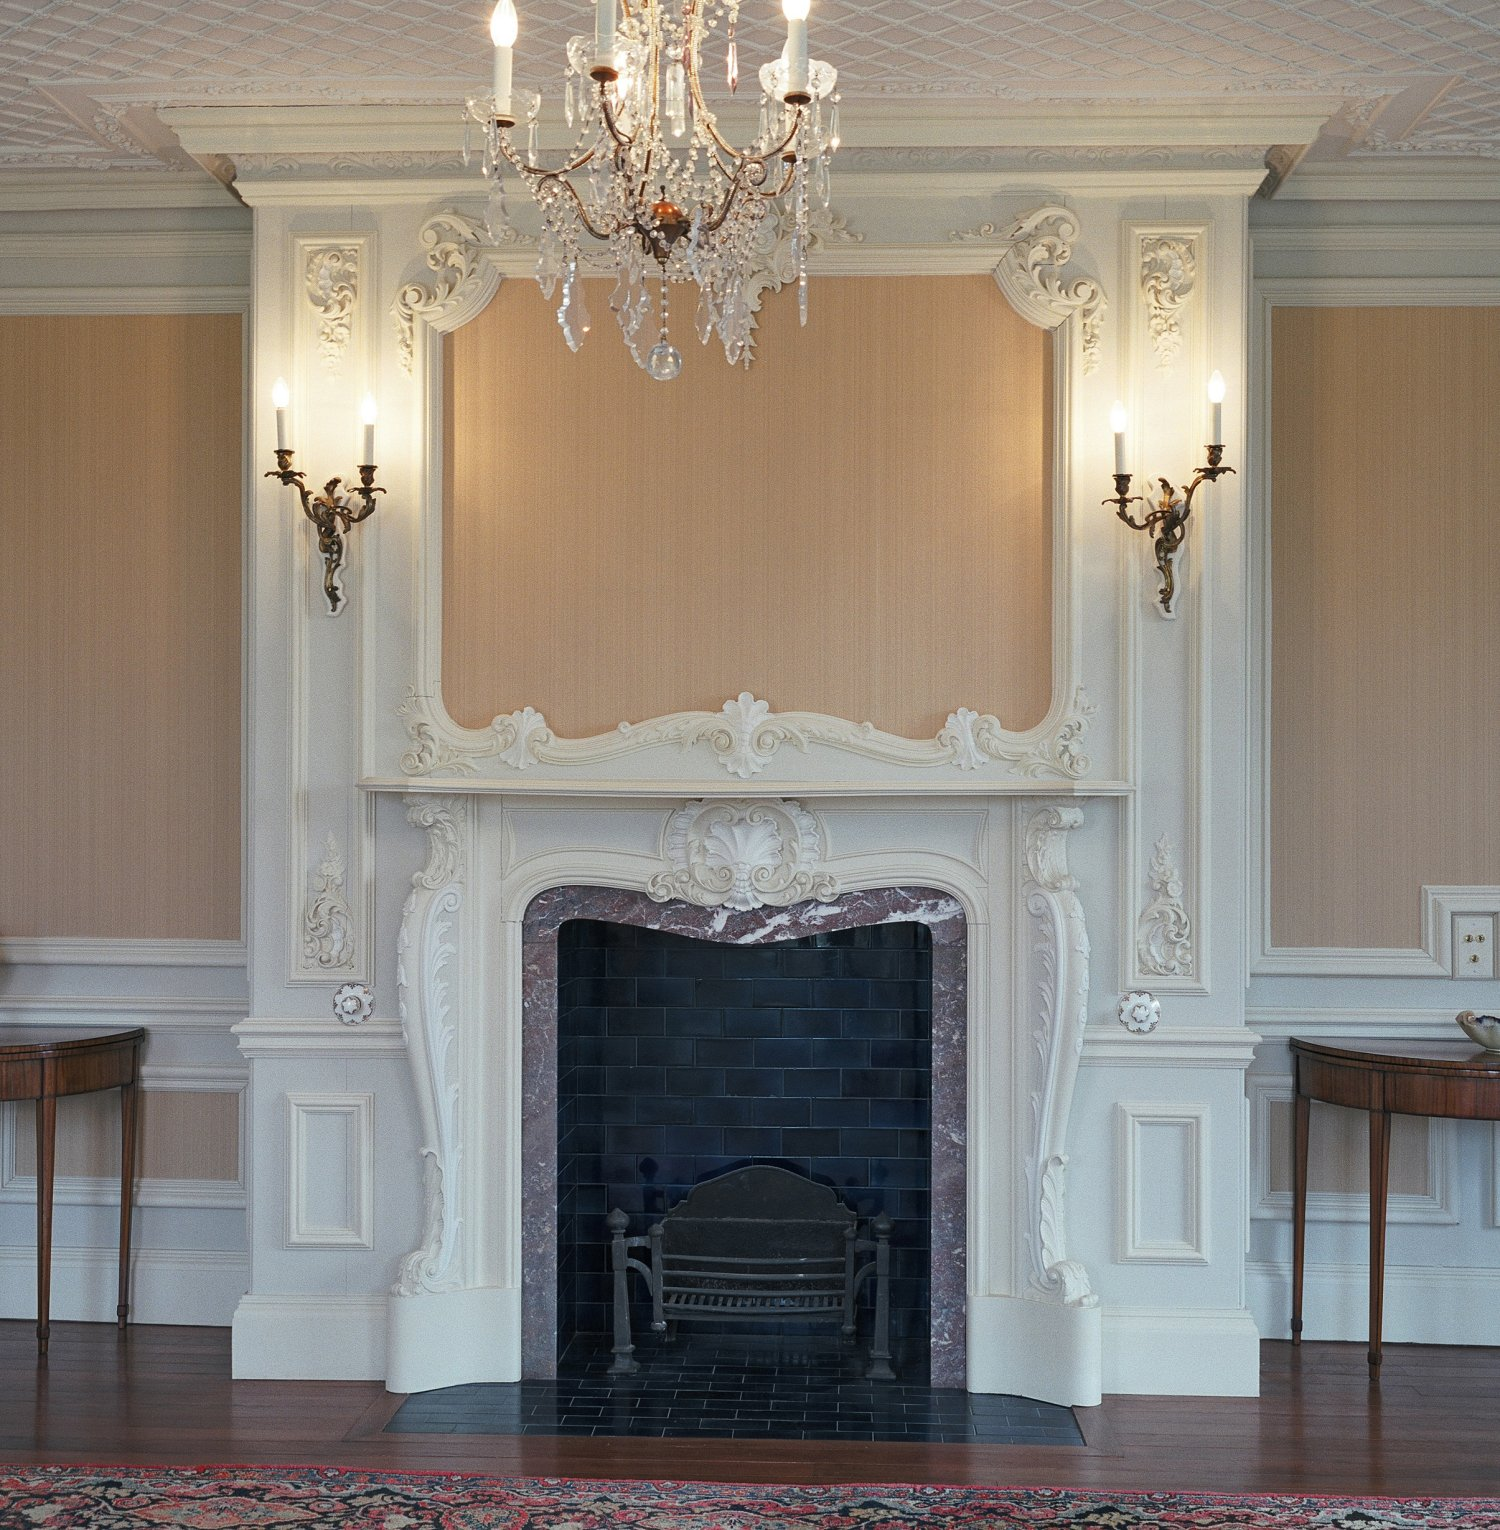 Restored fireplace in the Dining Room